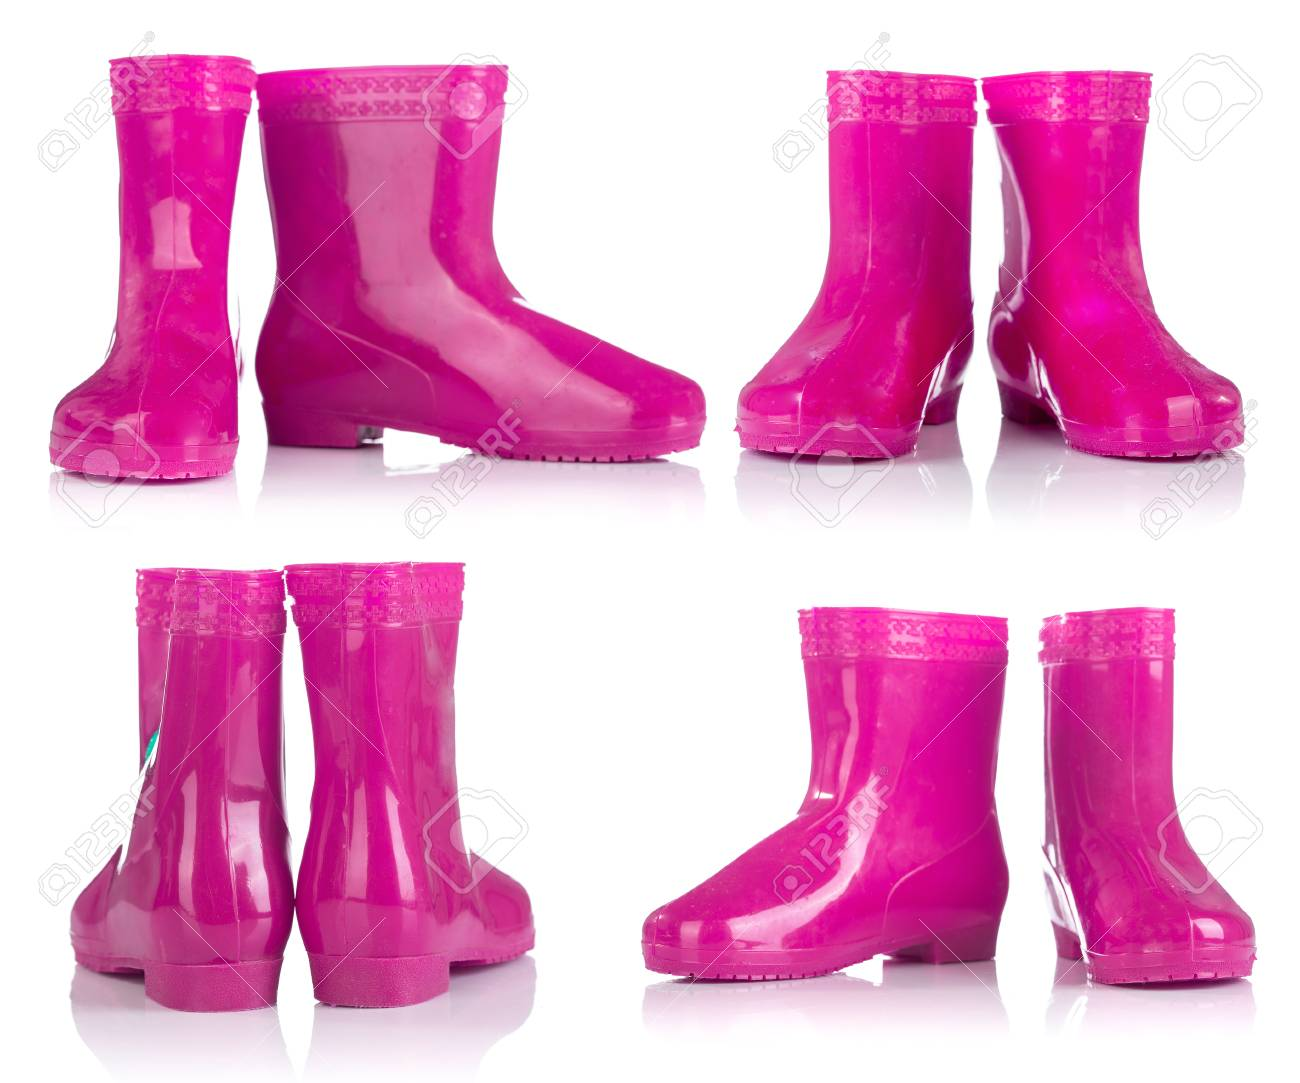 Pink Rubber Boots For Kids Isolated